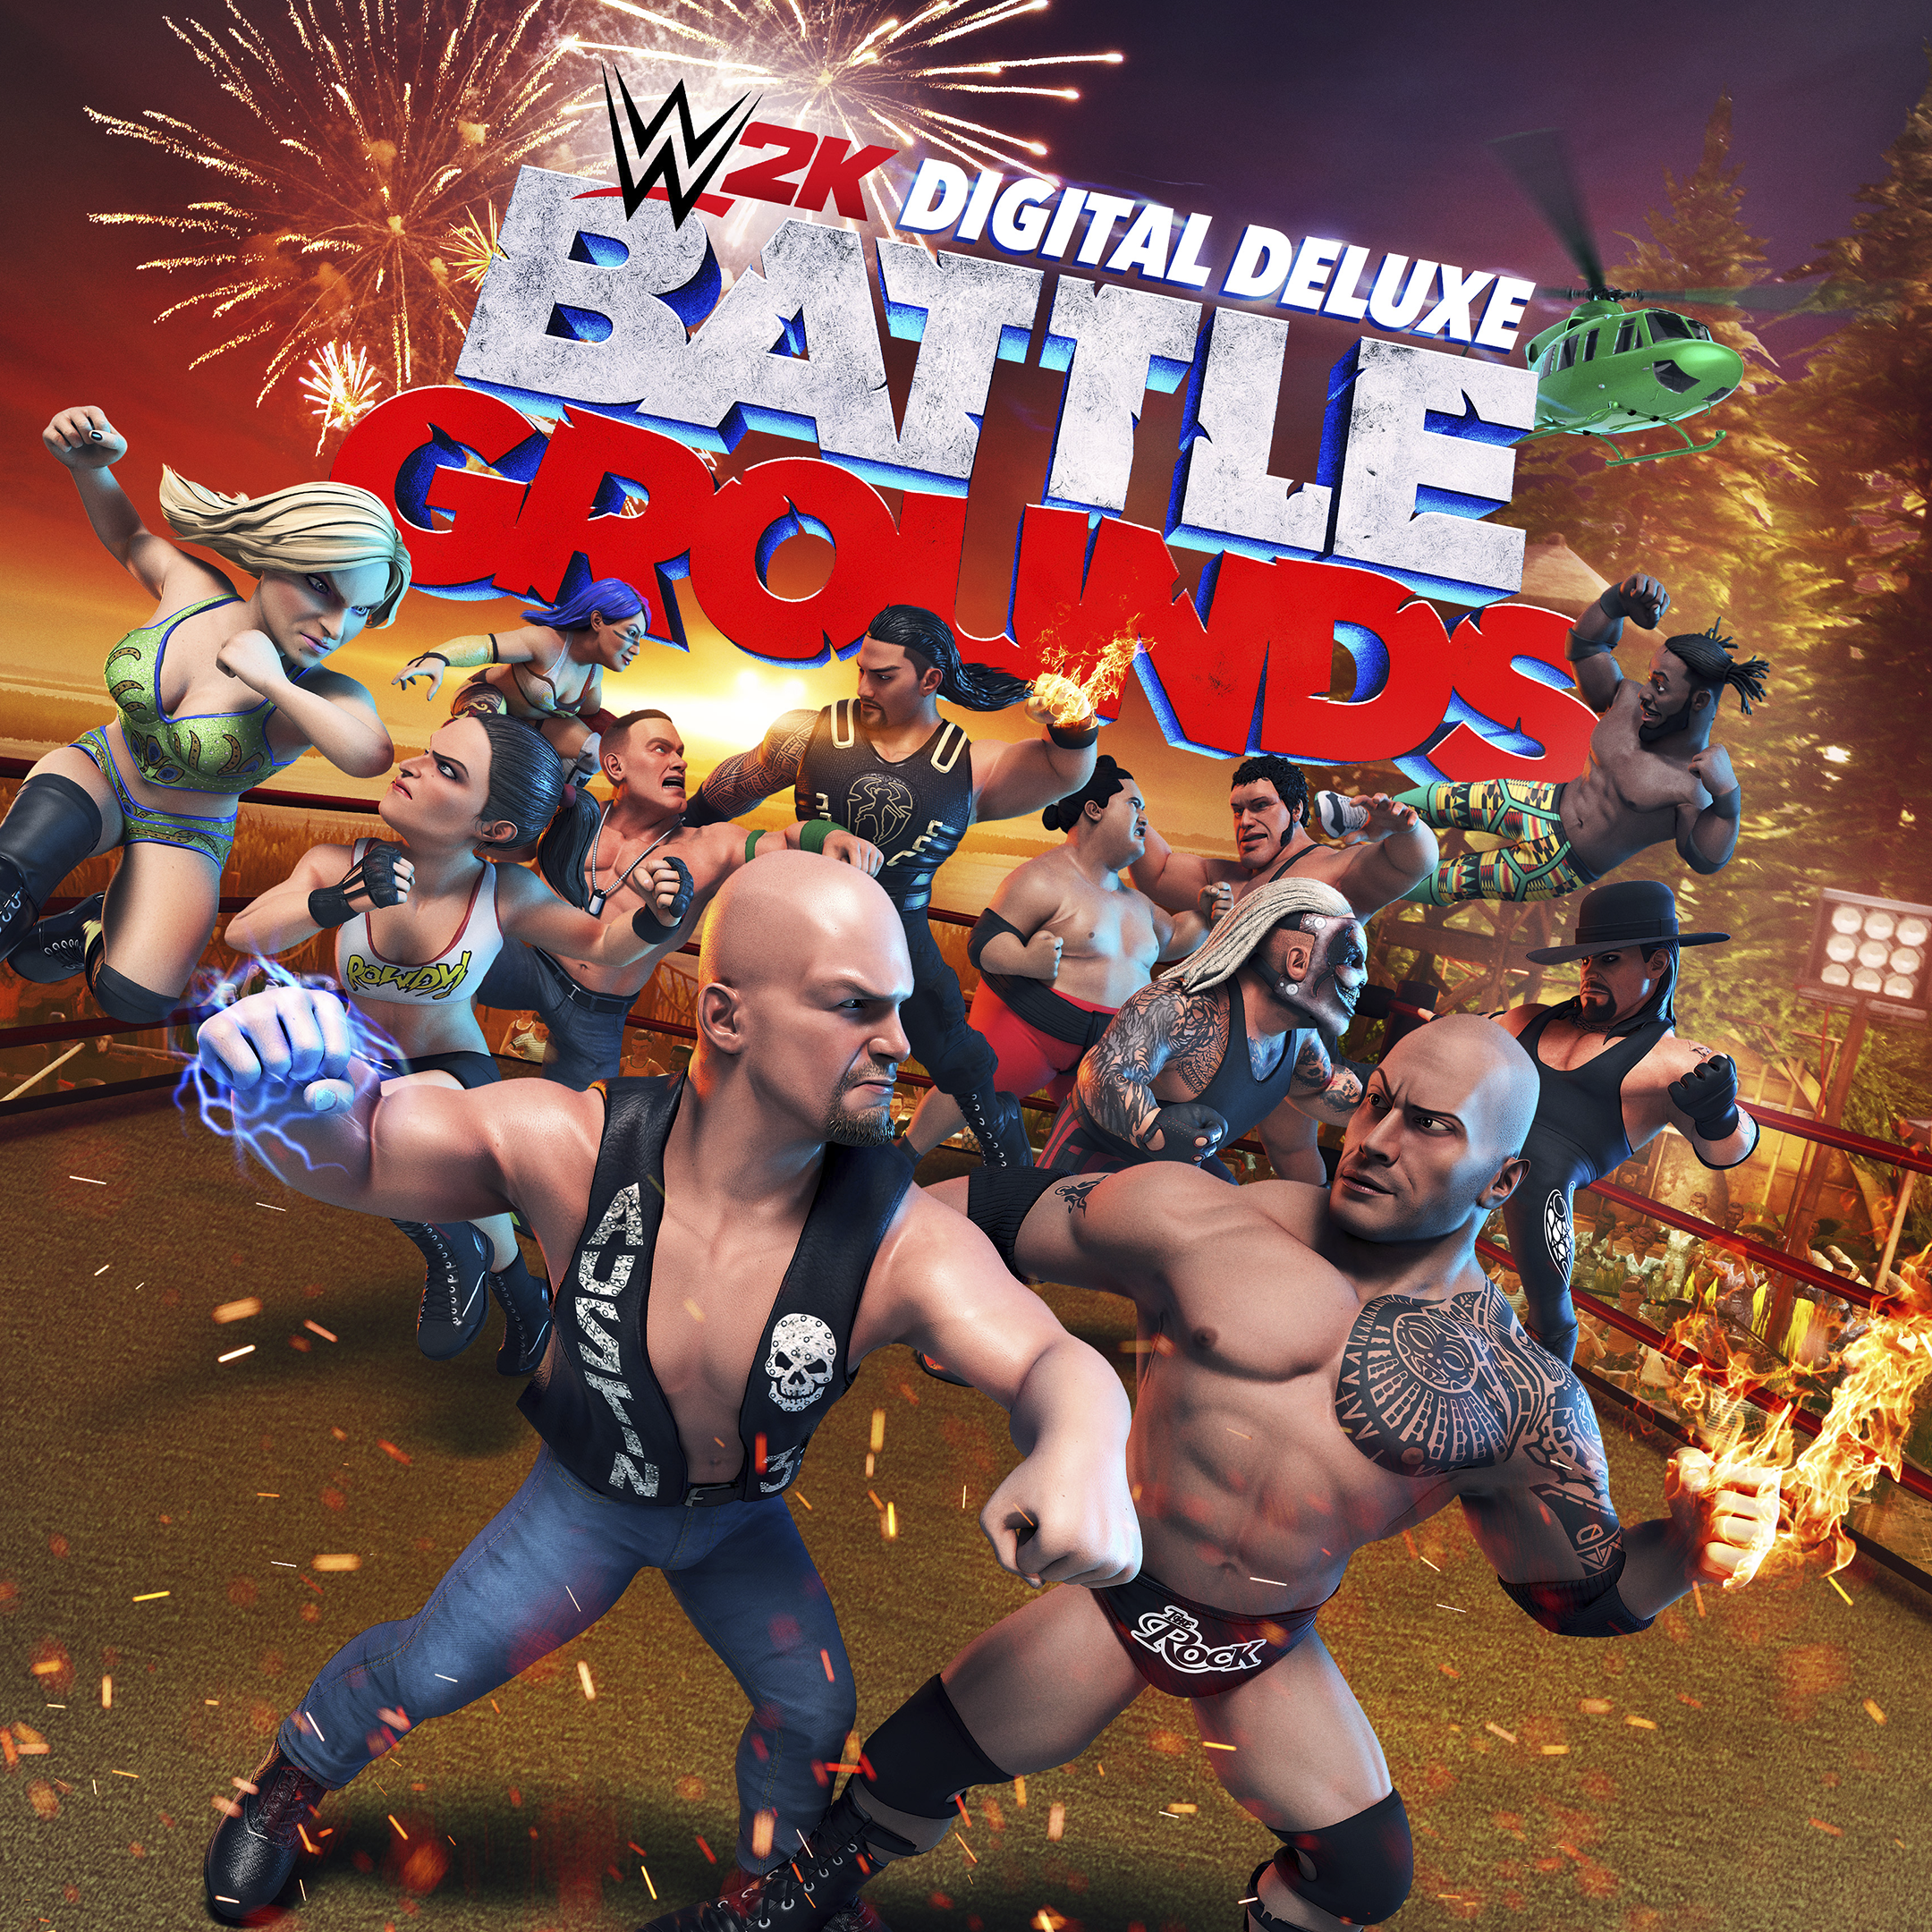 Reserva de WWE 2K Battlegrounds Digital Deluxe Edition: ilustración para tiendas